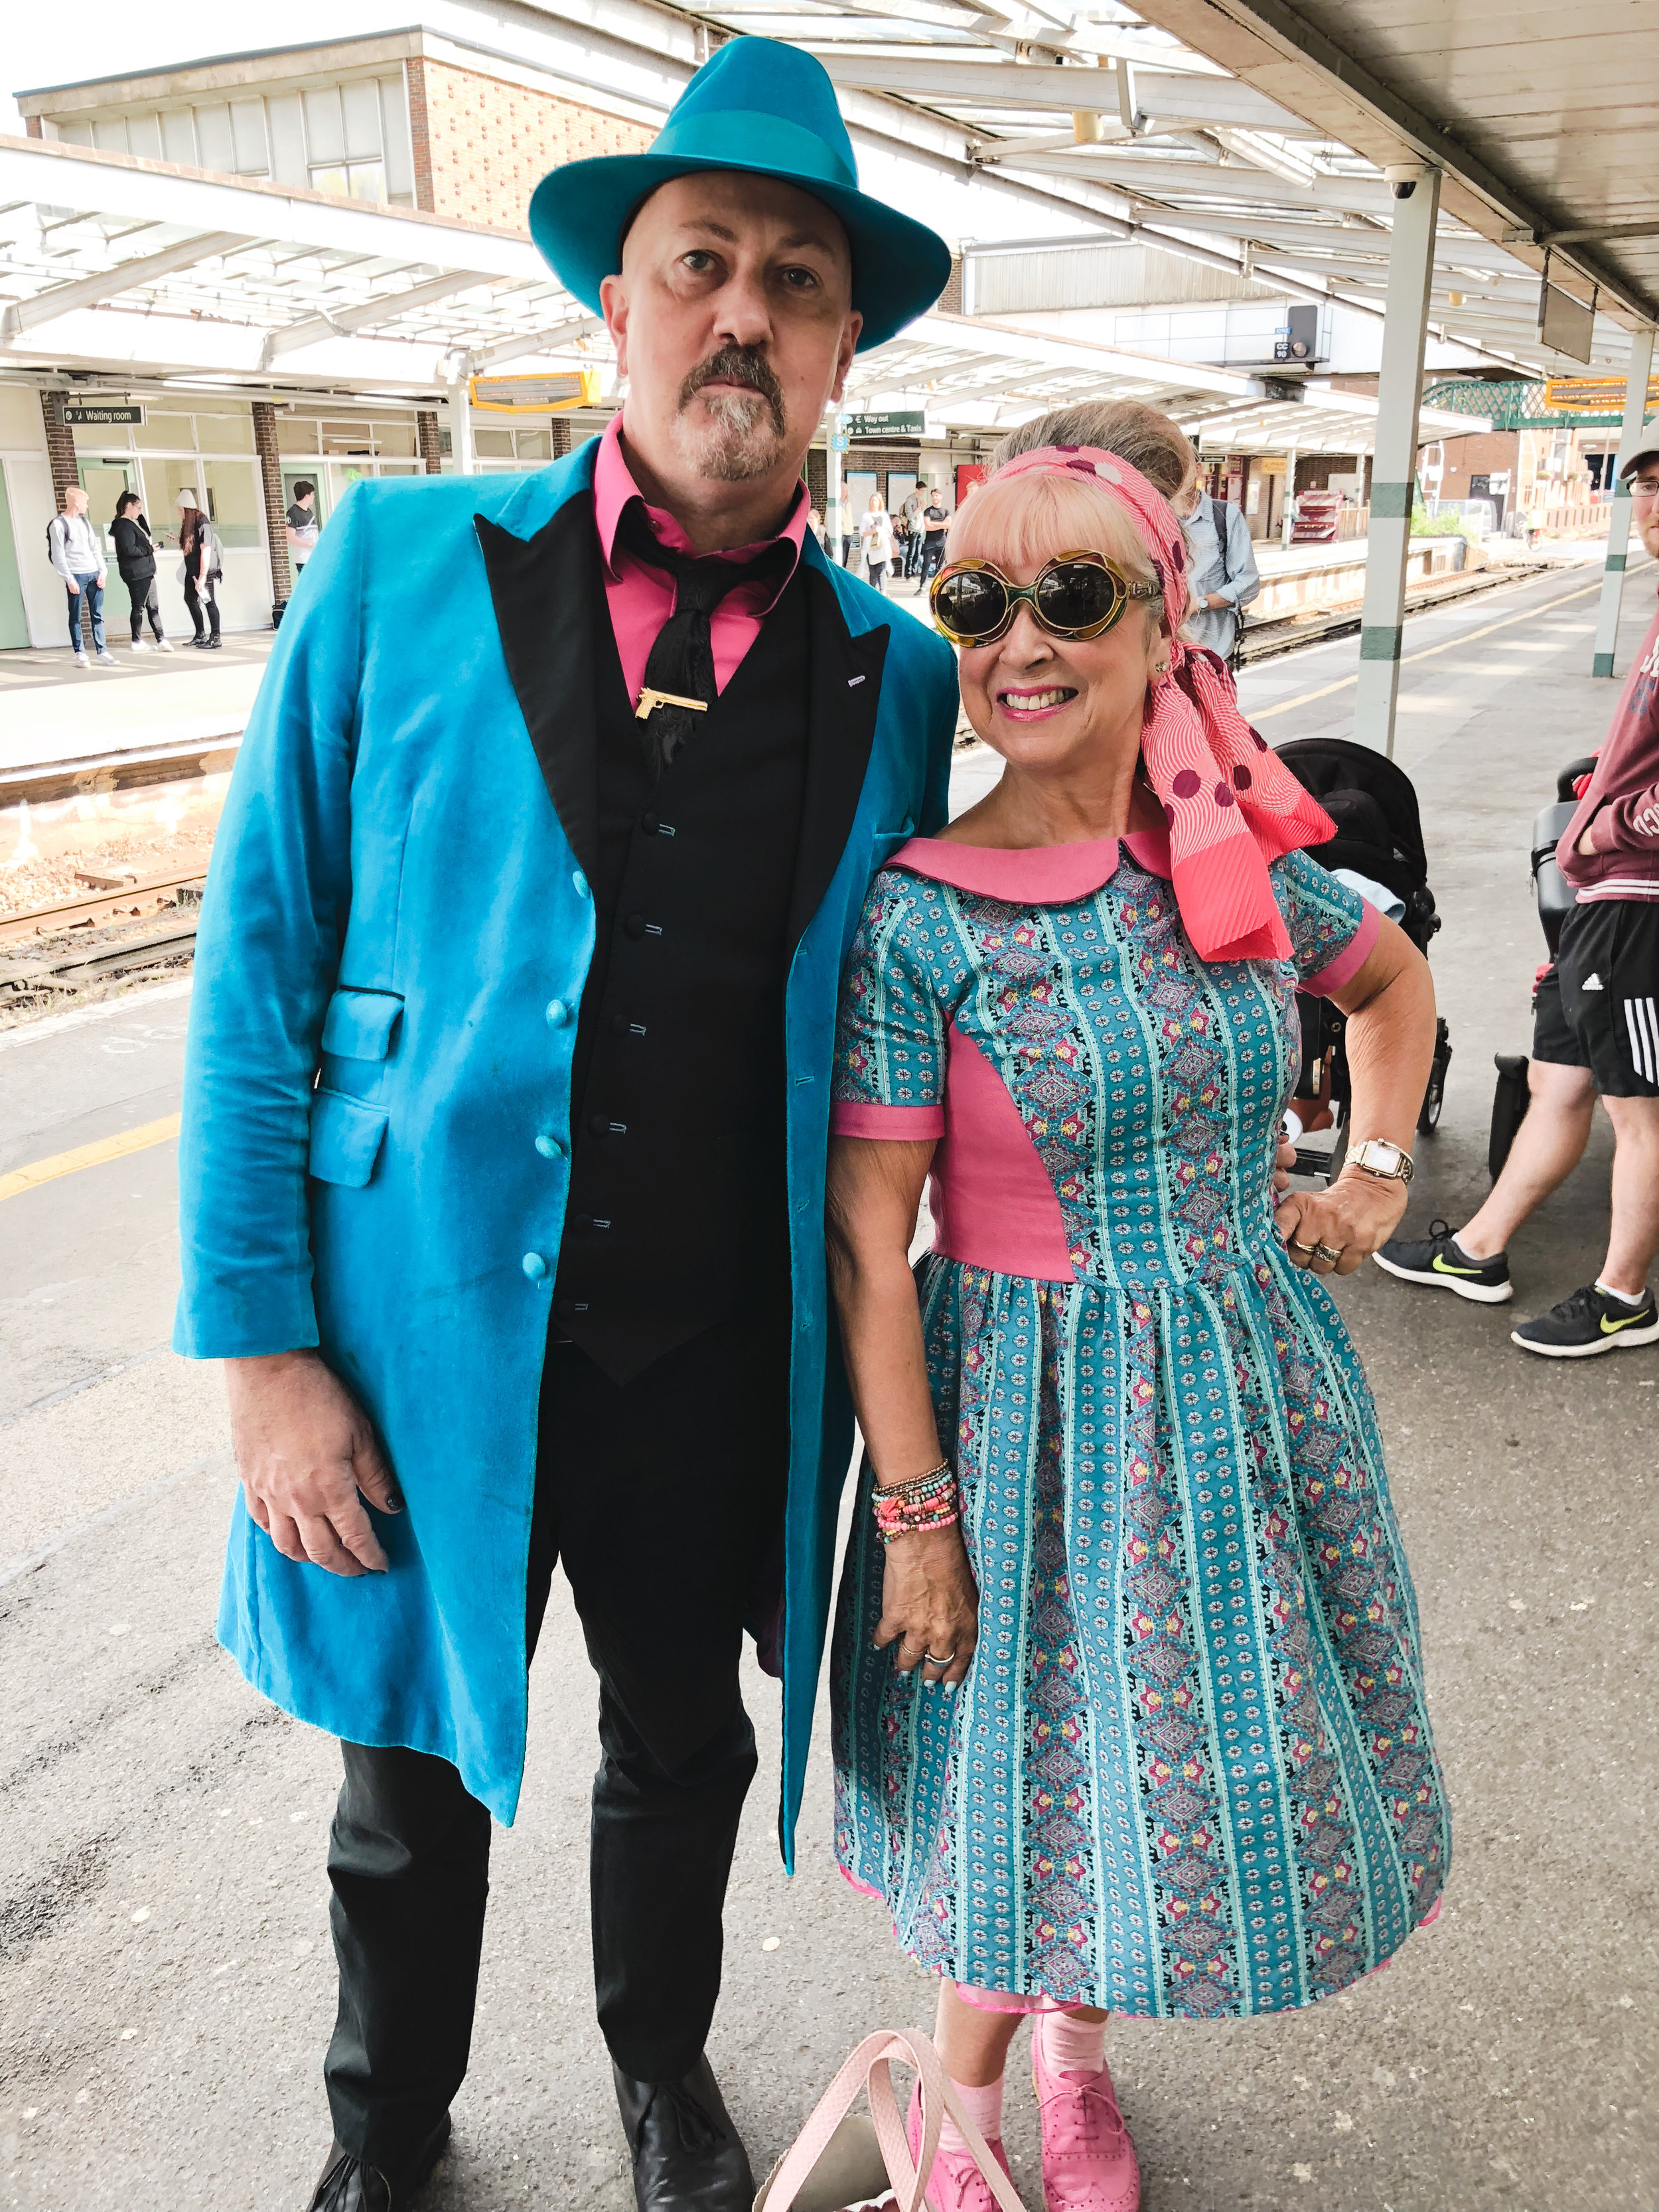 meeting someone wearing the same blue and pink vibe, goodwood revival.jpg